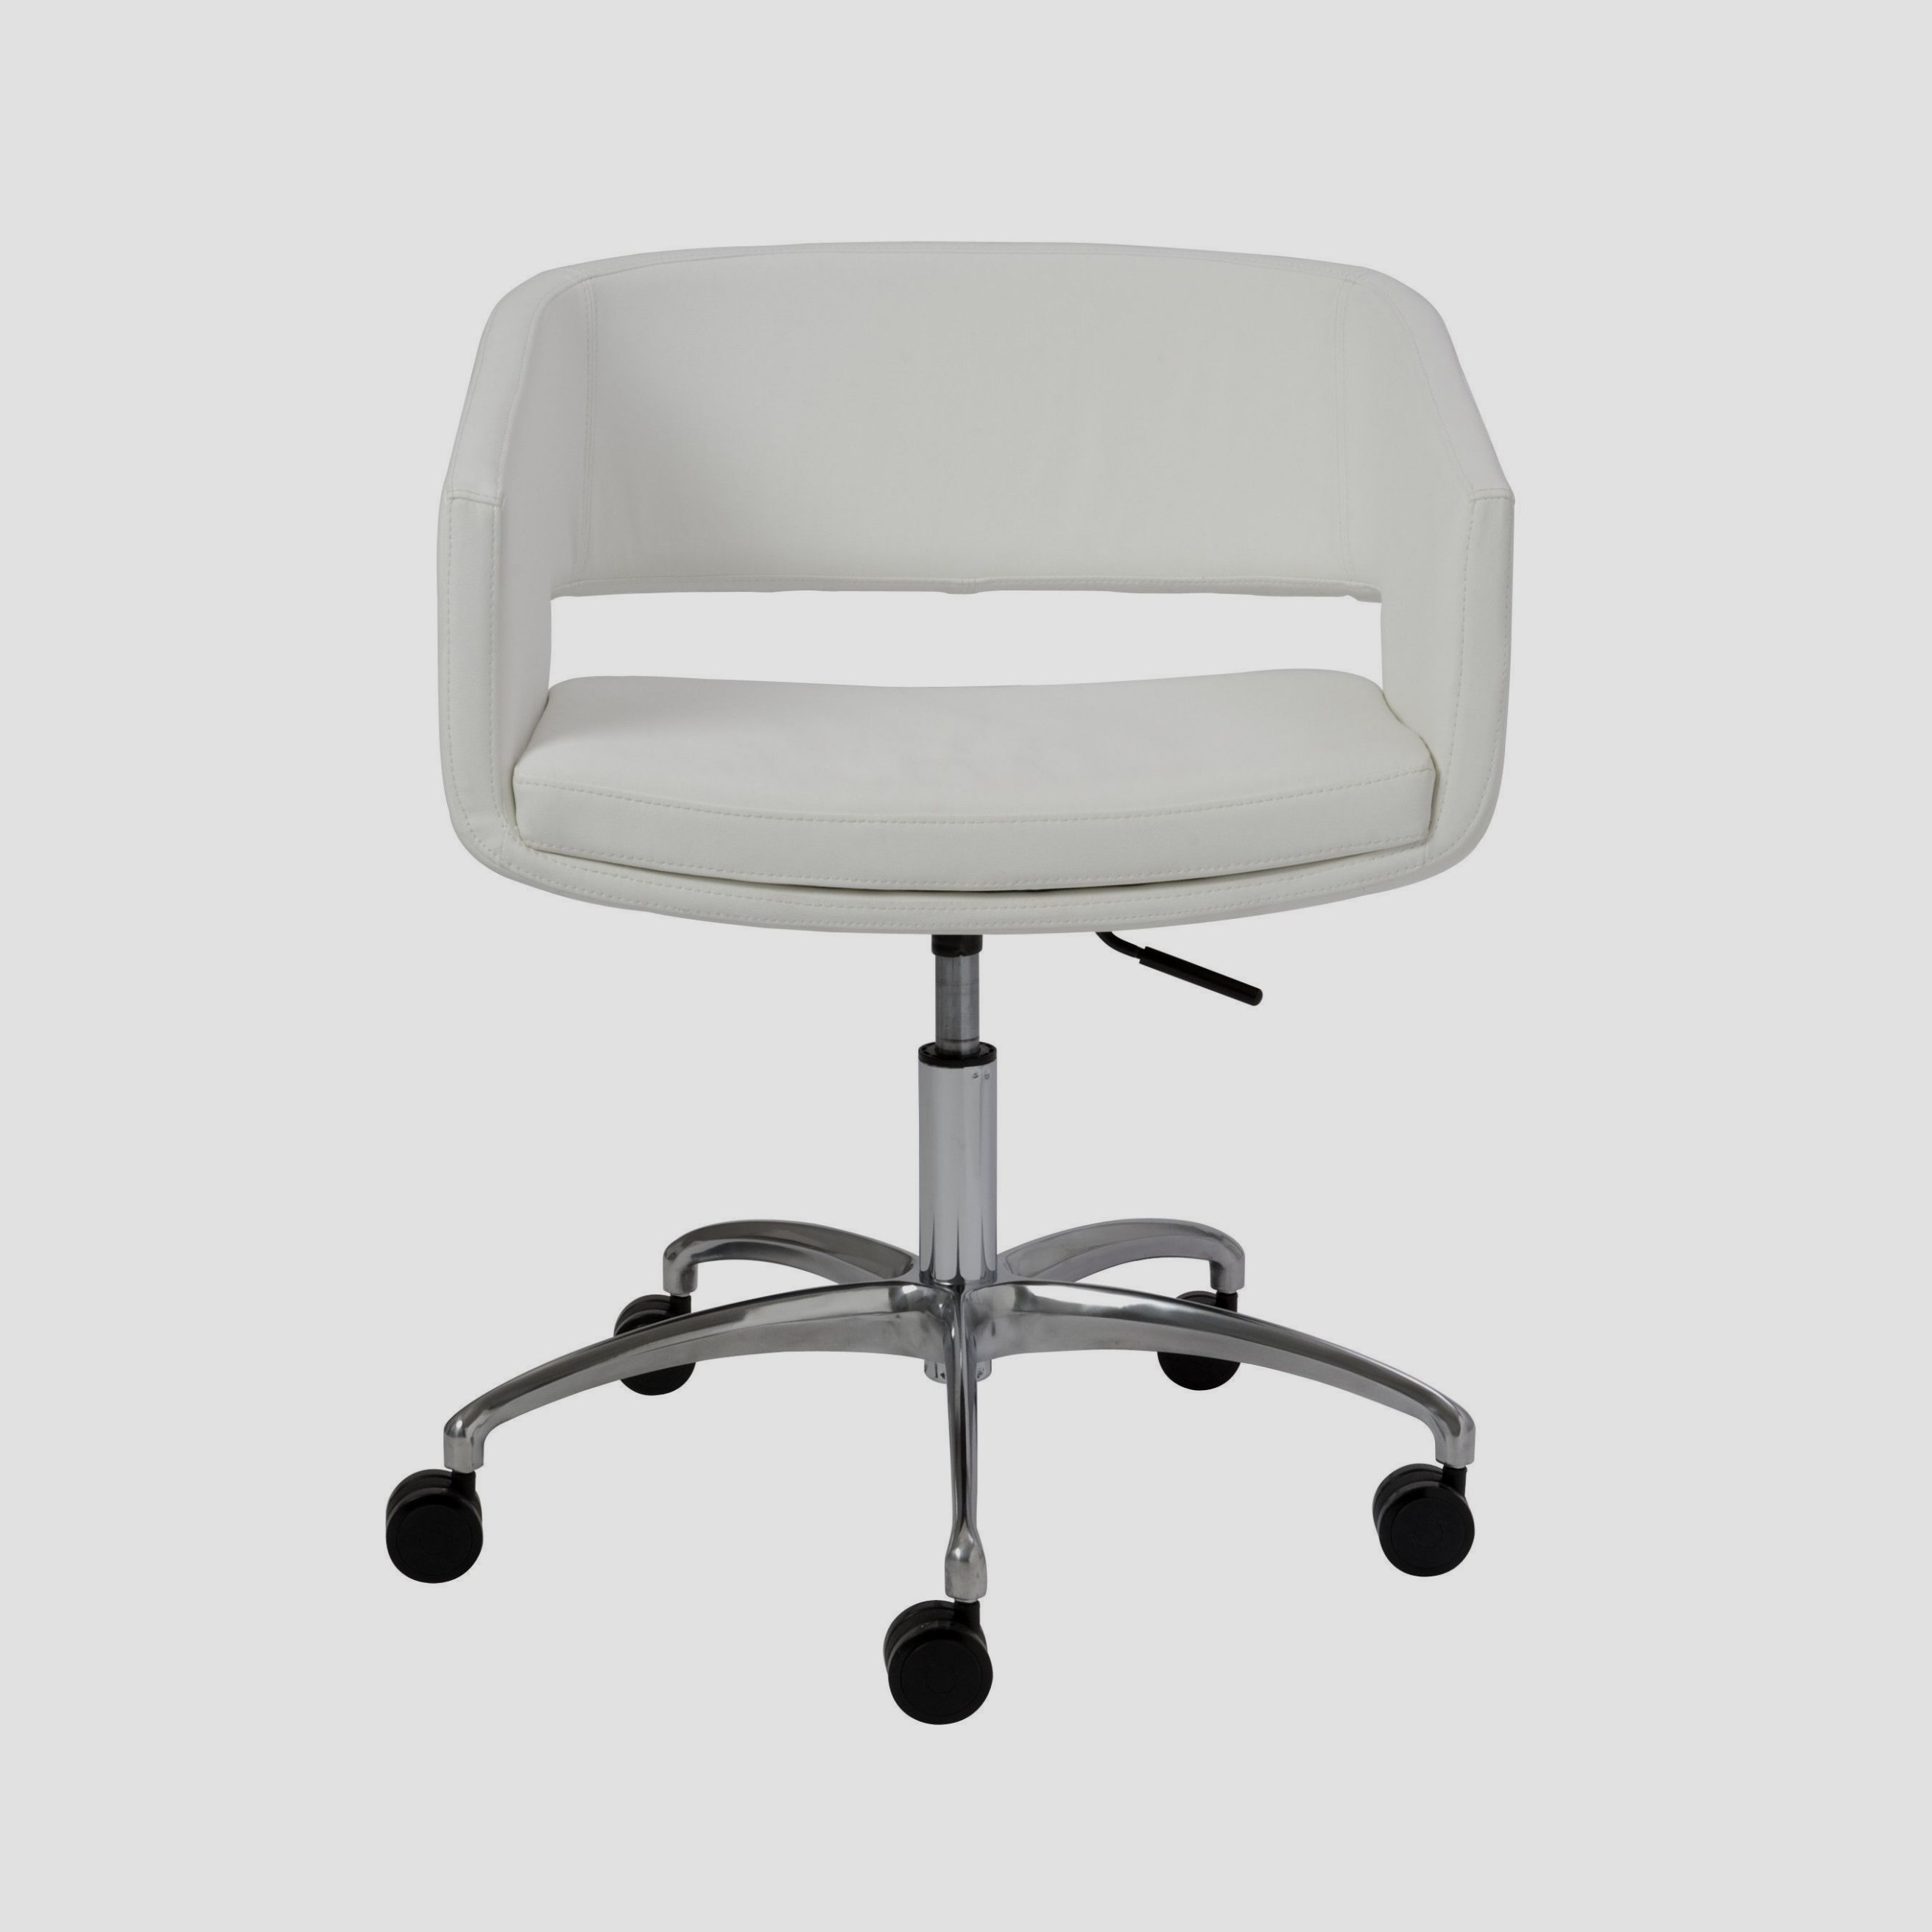 Sillones Despacho Wddj Sillones De Despacho Especial Amelia Fice Chair In White